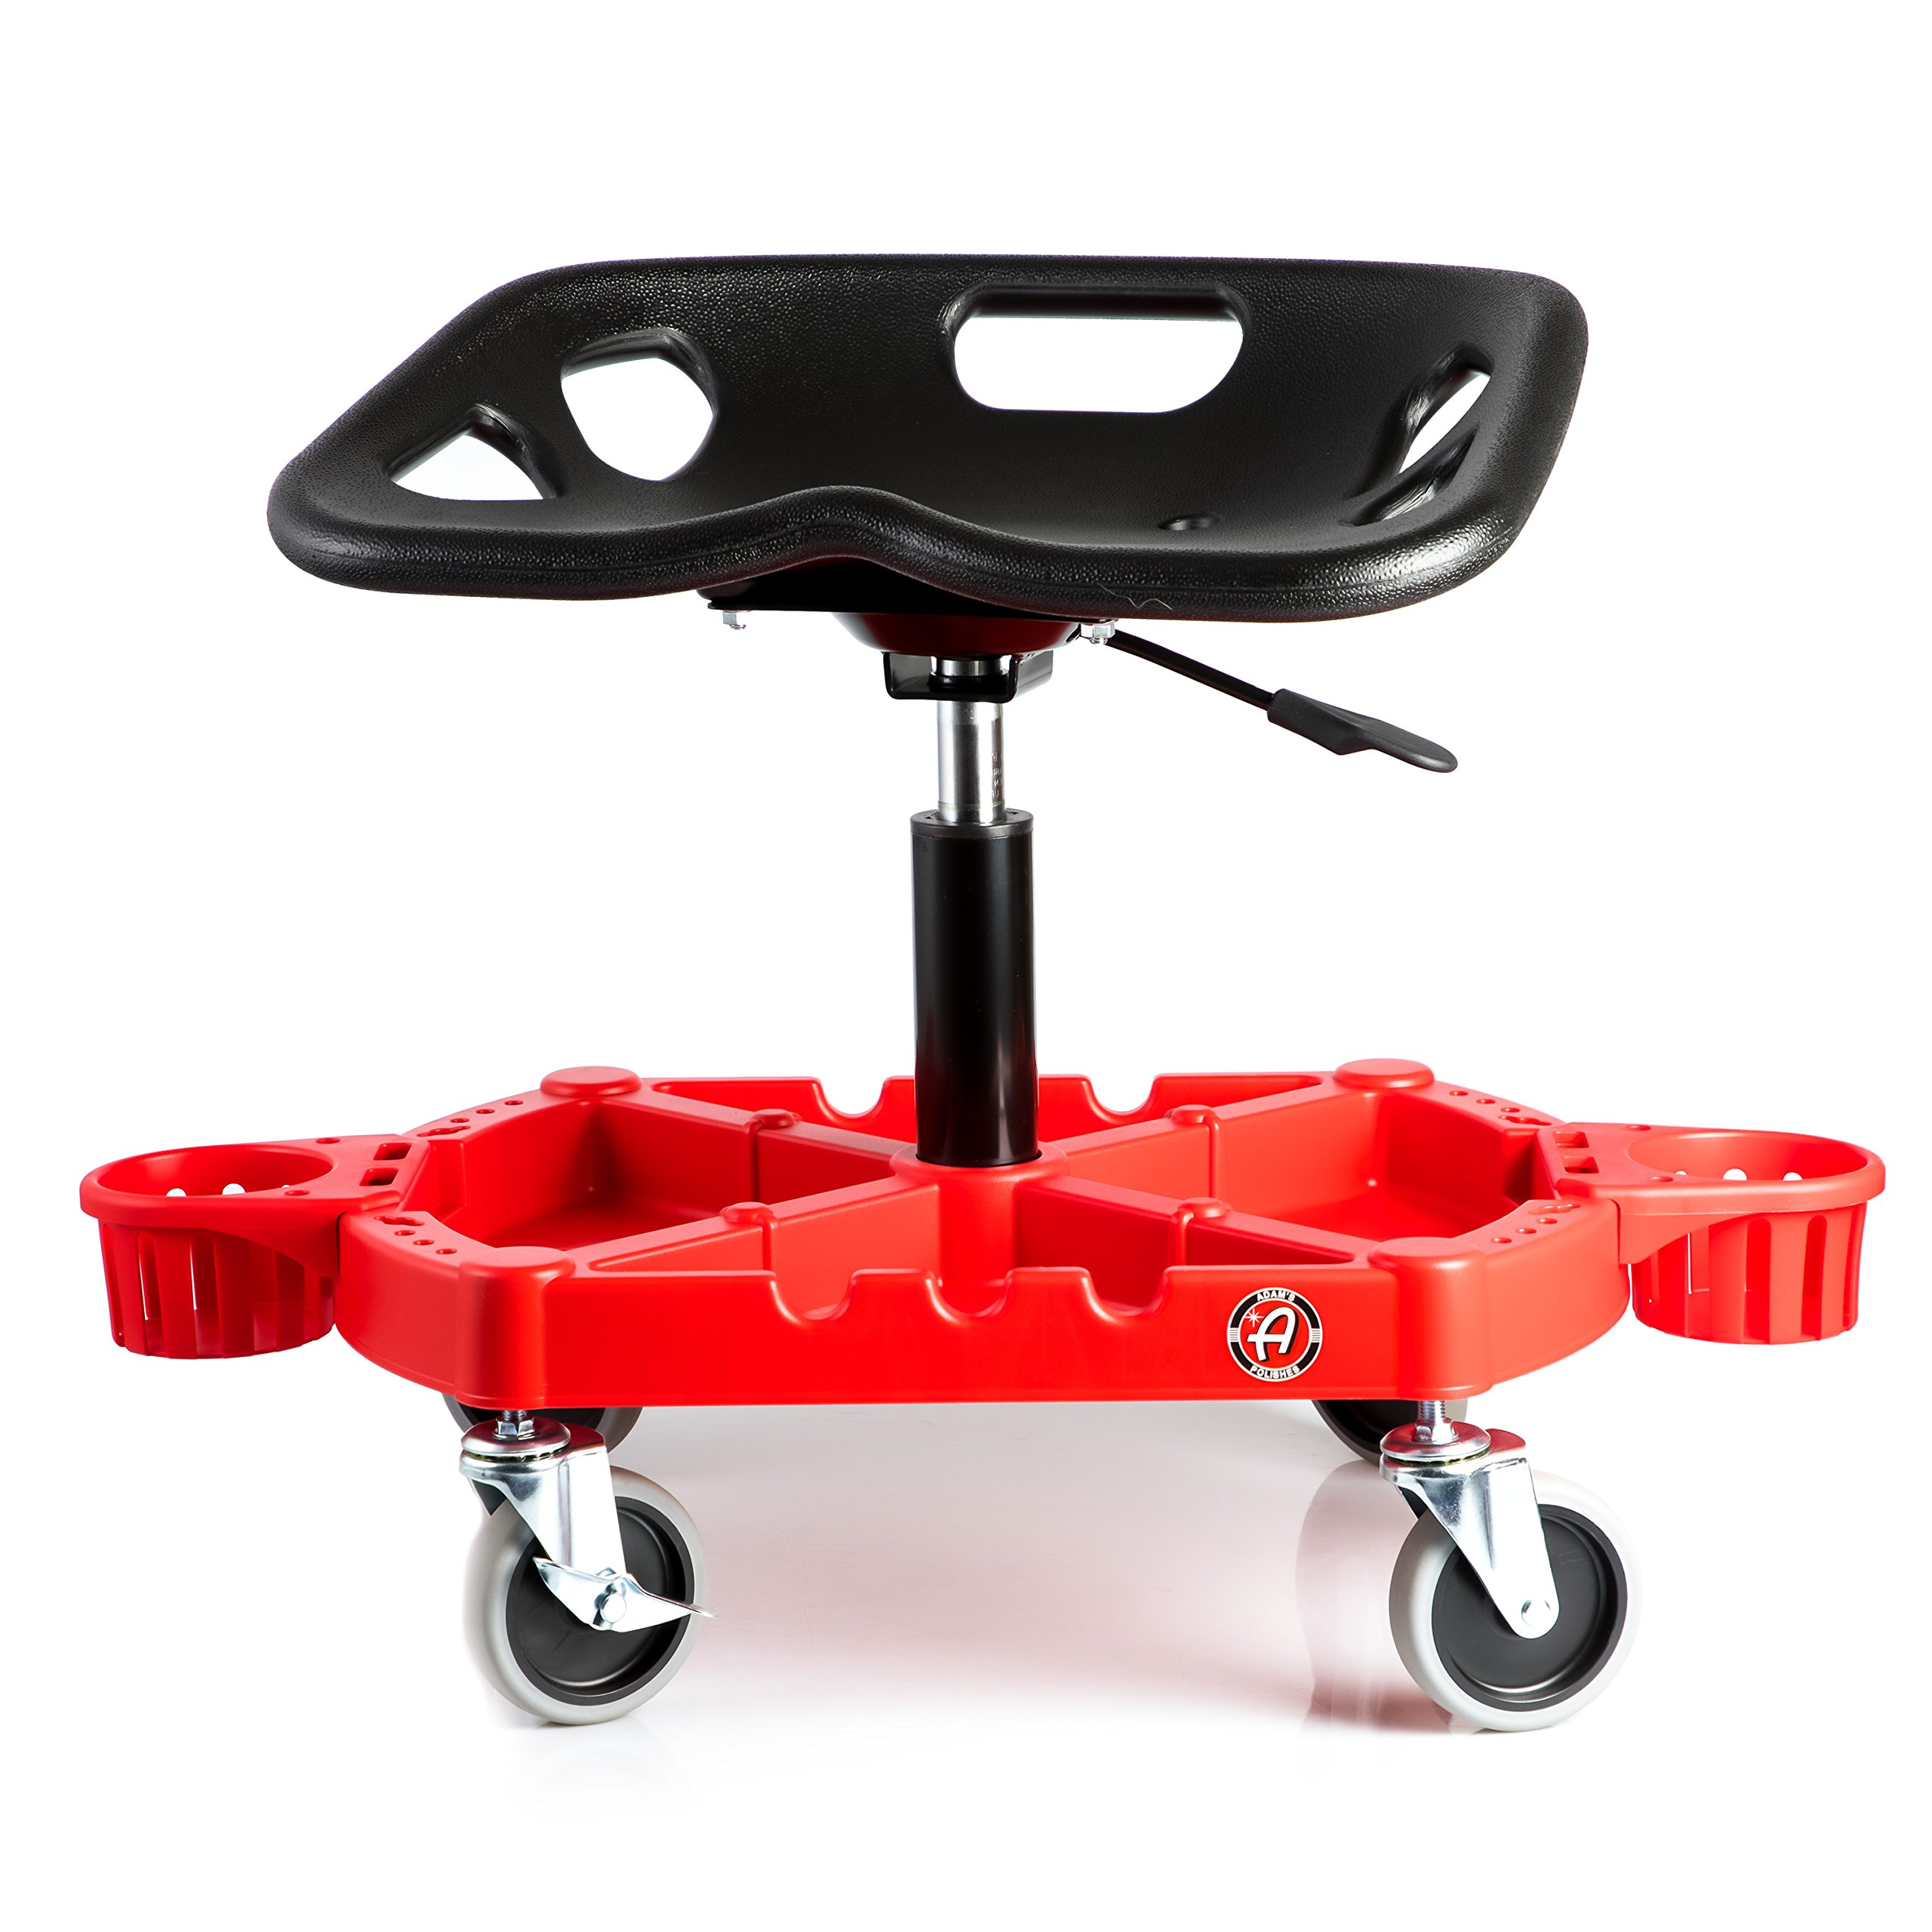 Adam's ProStool Detailing Creeper - Ergonomically Designed for Comfort and Functionality - Adjustable Height and Heavy Duty Rolling Wheels - Comfortably Detail or Paint Correct Any Vehicle